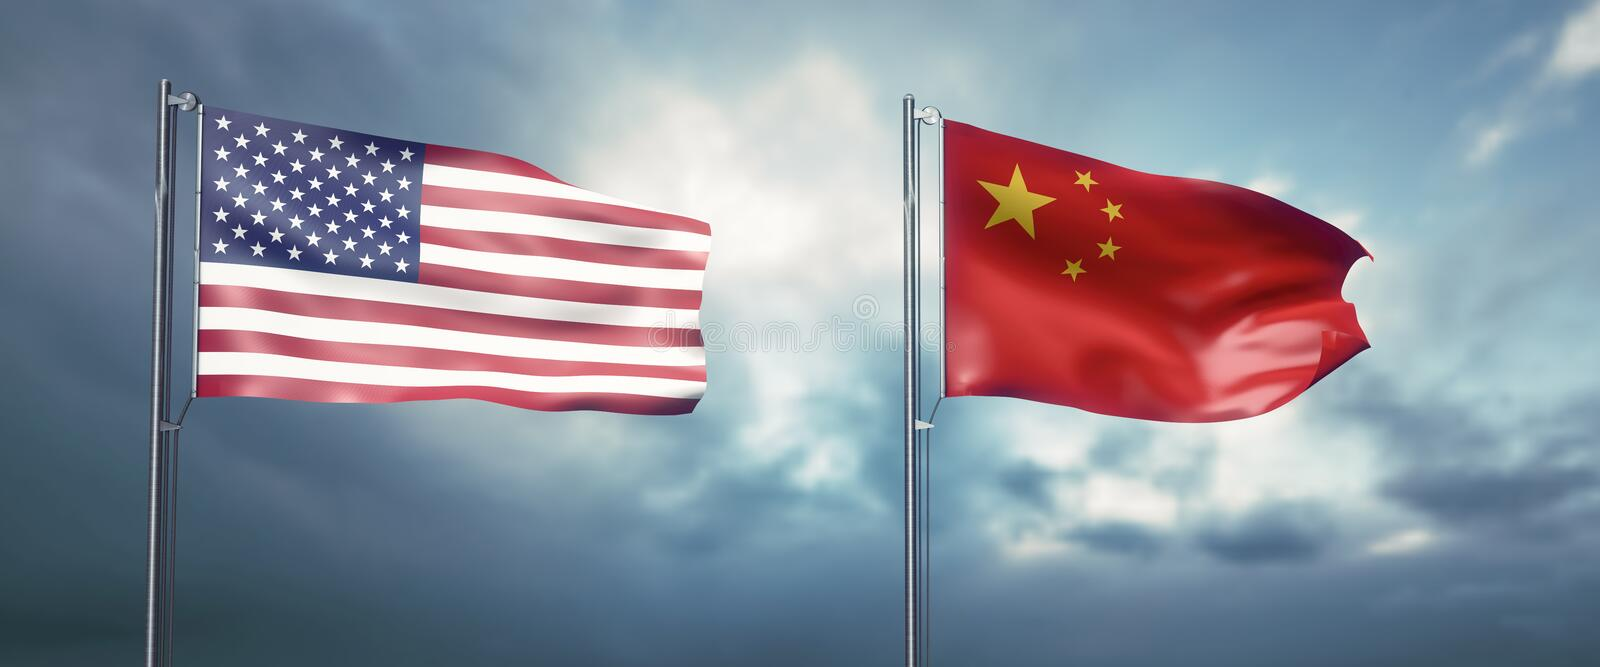 Two state flags of the united states of america and china, facing each other and moving in the wind in front of cl royalty free illustration